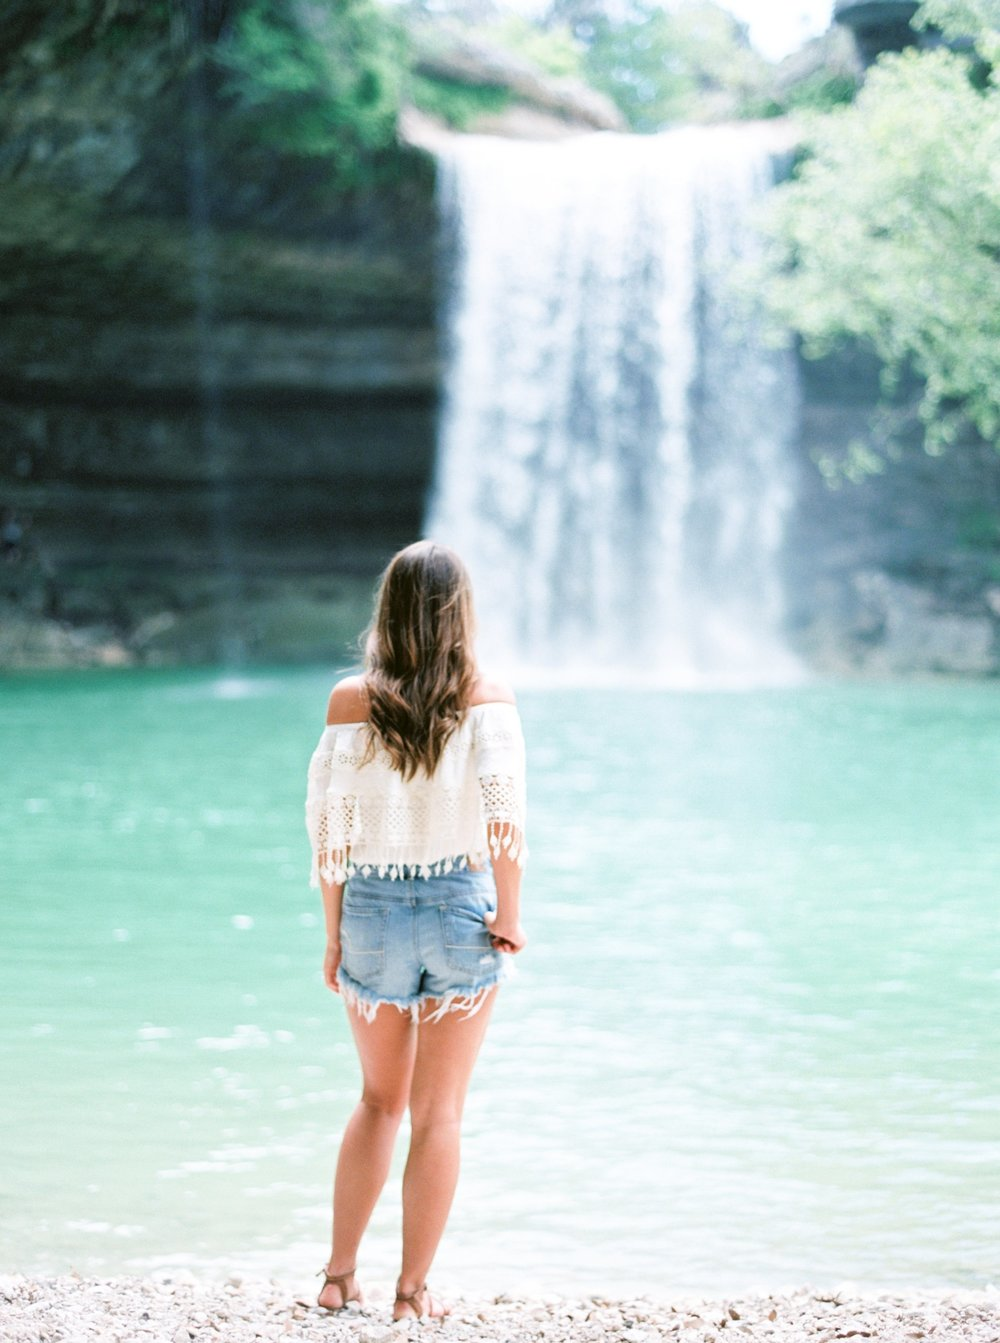 austin senior photography hamilton pool